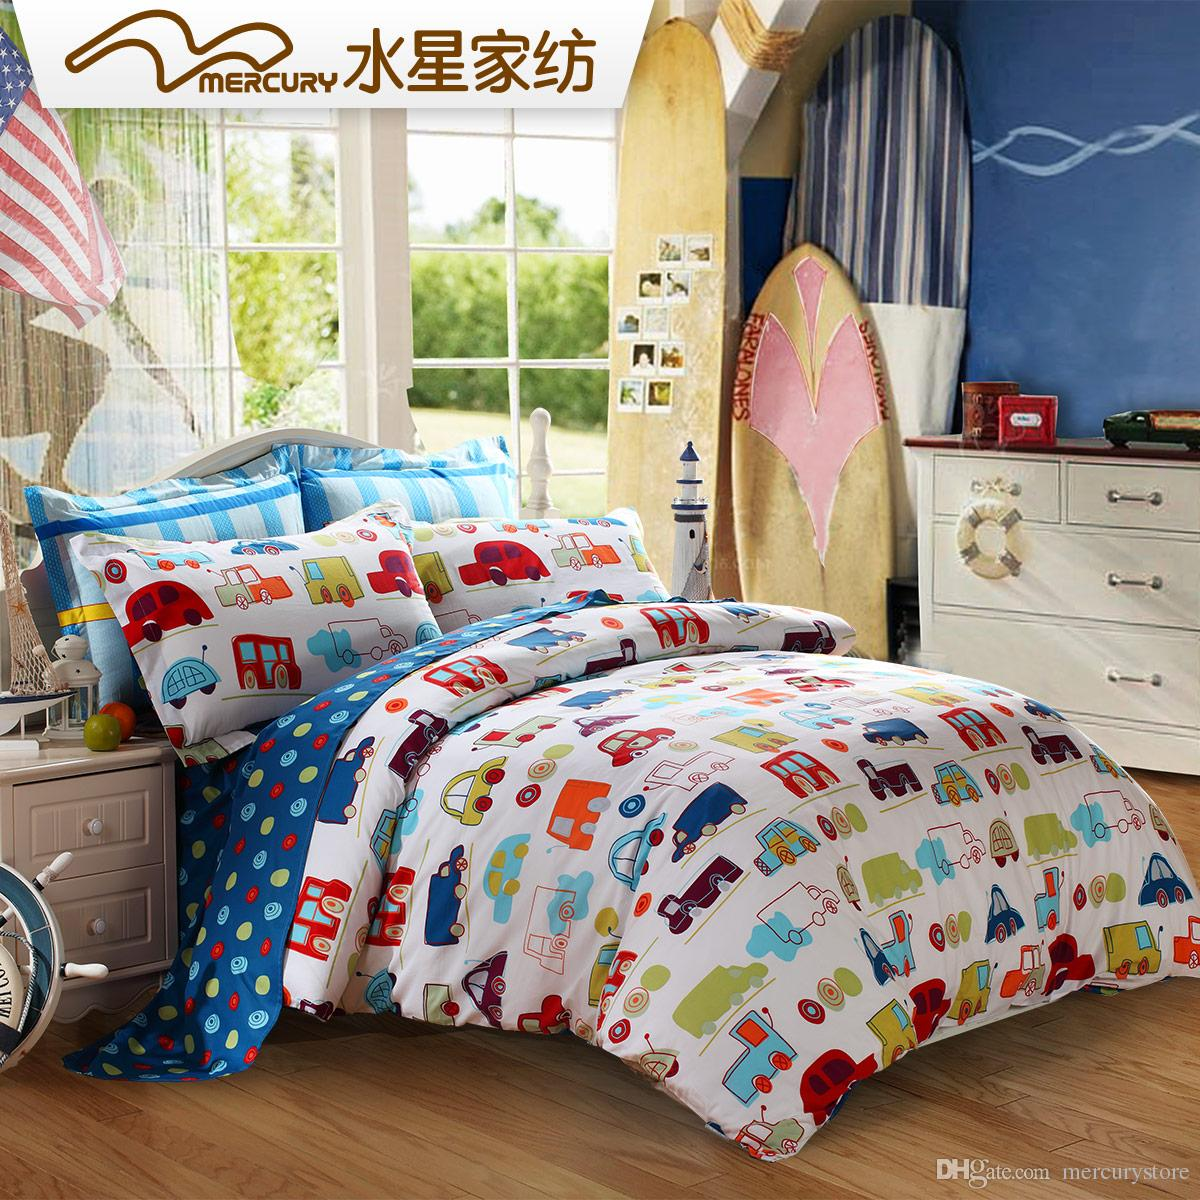 Mercury Home Textile 100 Cotton Printed Bedding Sets With